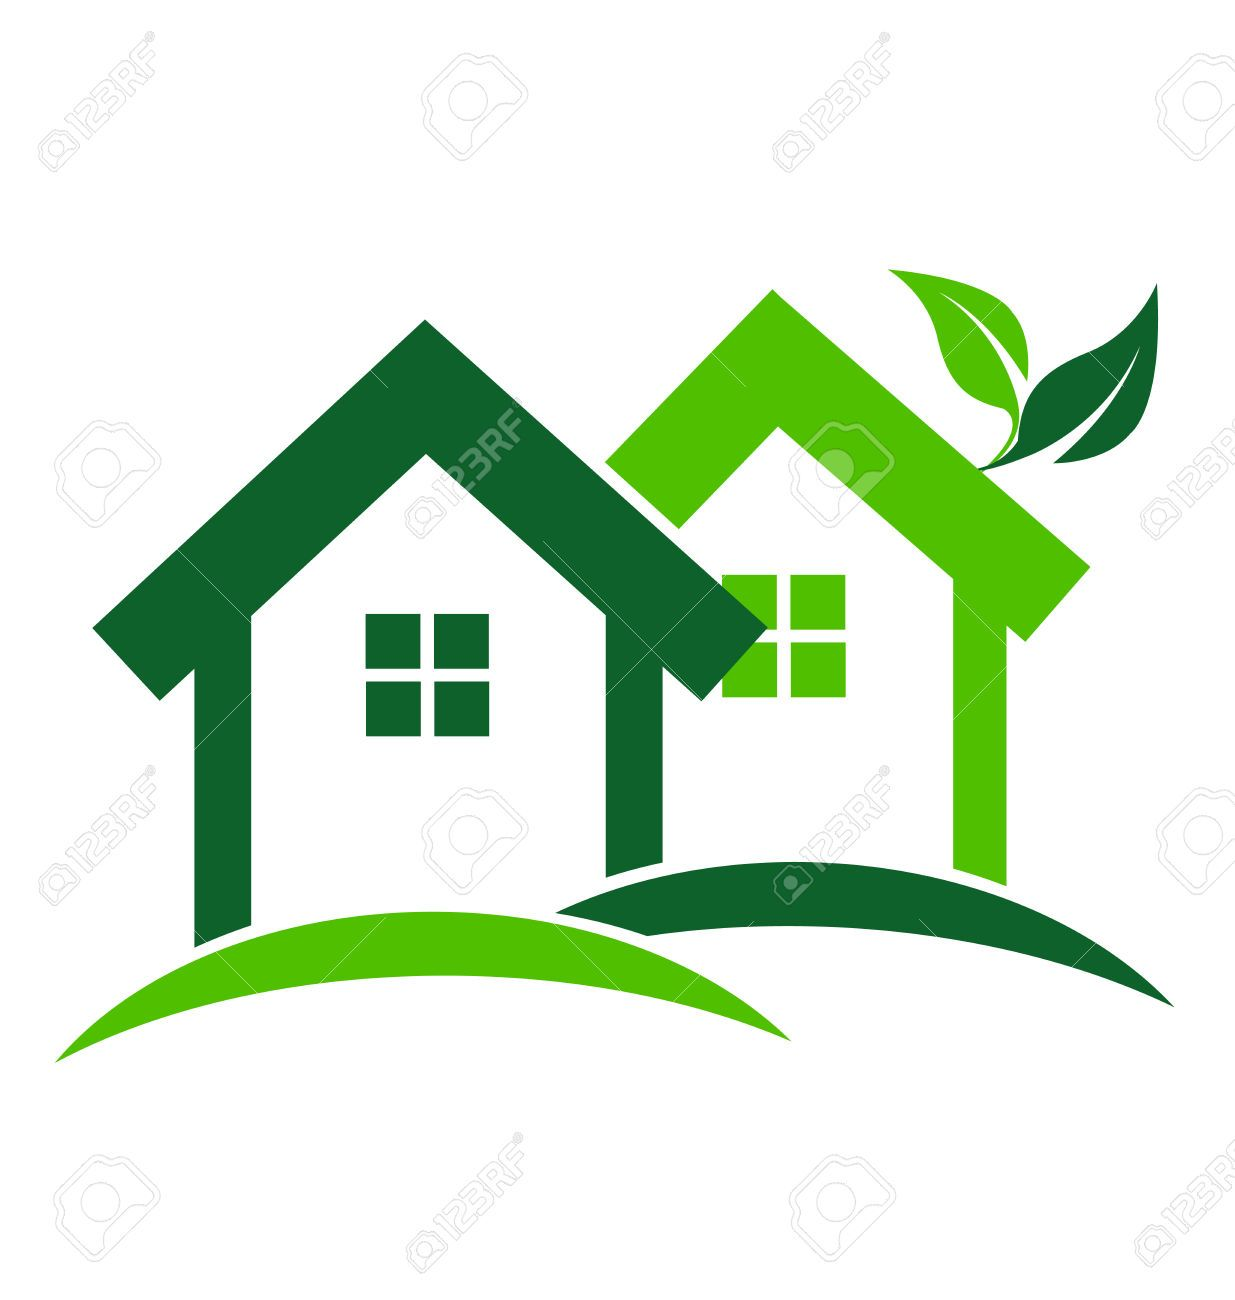 medium resolution of green houses real estate business card design vector icon royalty free cliparts vectors and stock illustration image 35628987